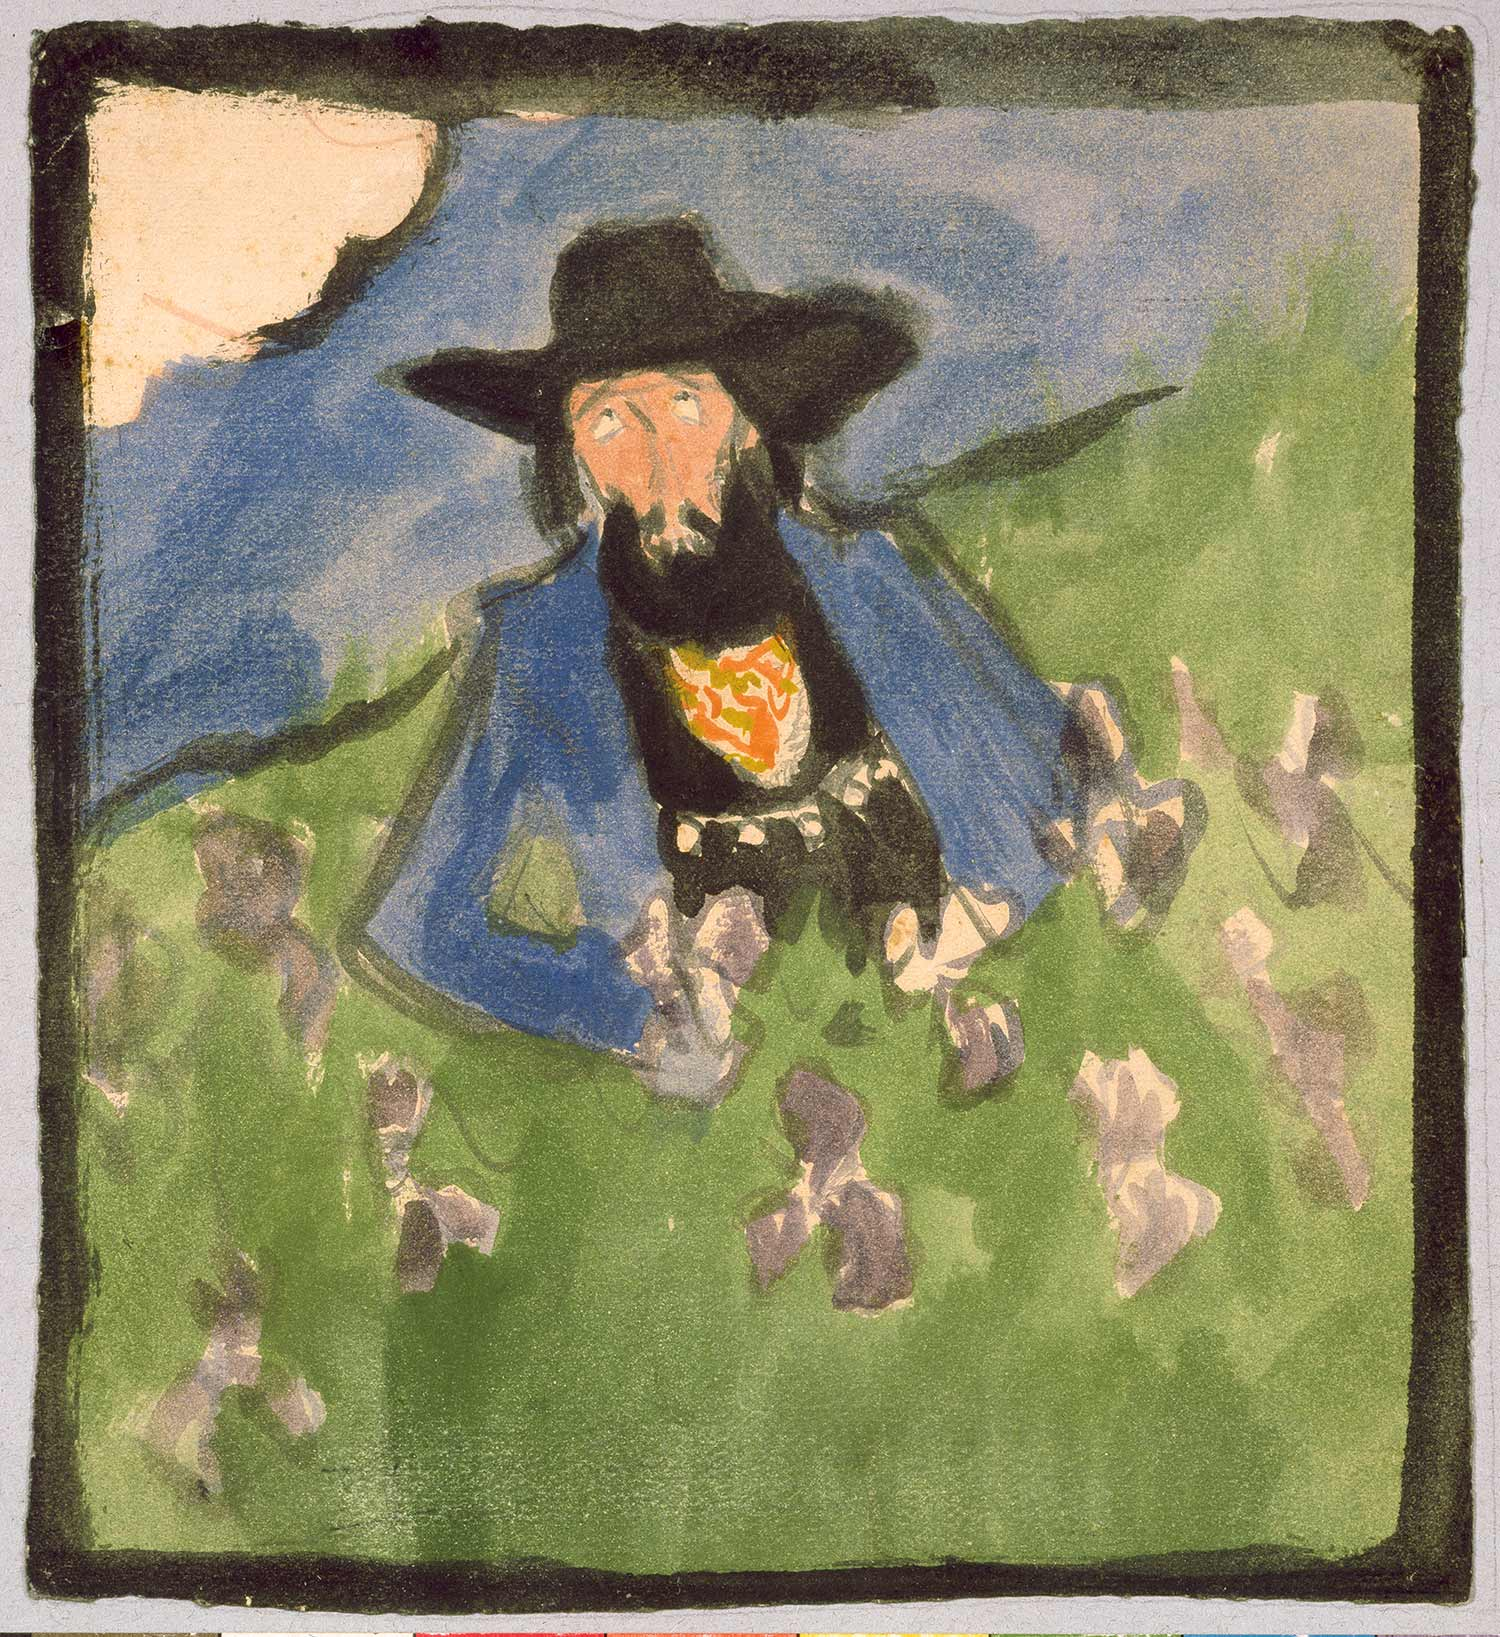 Pere Romeu in a Field of Irises